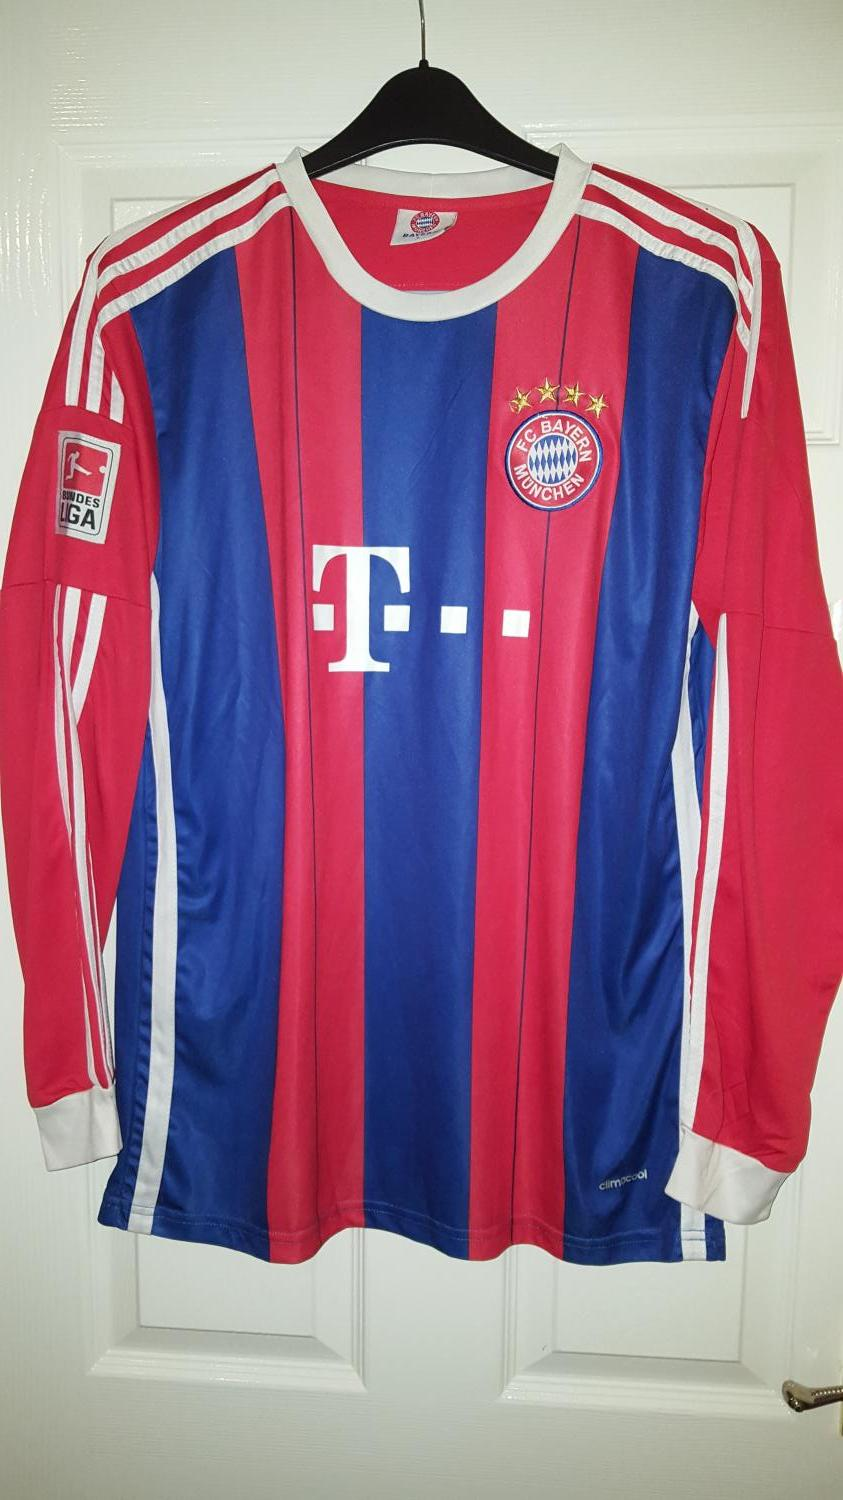 bayern munich retro replicas football shirt 2014 sponsored by t mobile. Black Bedroom Furniture Sets. Home Design Ideas